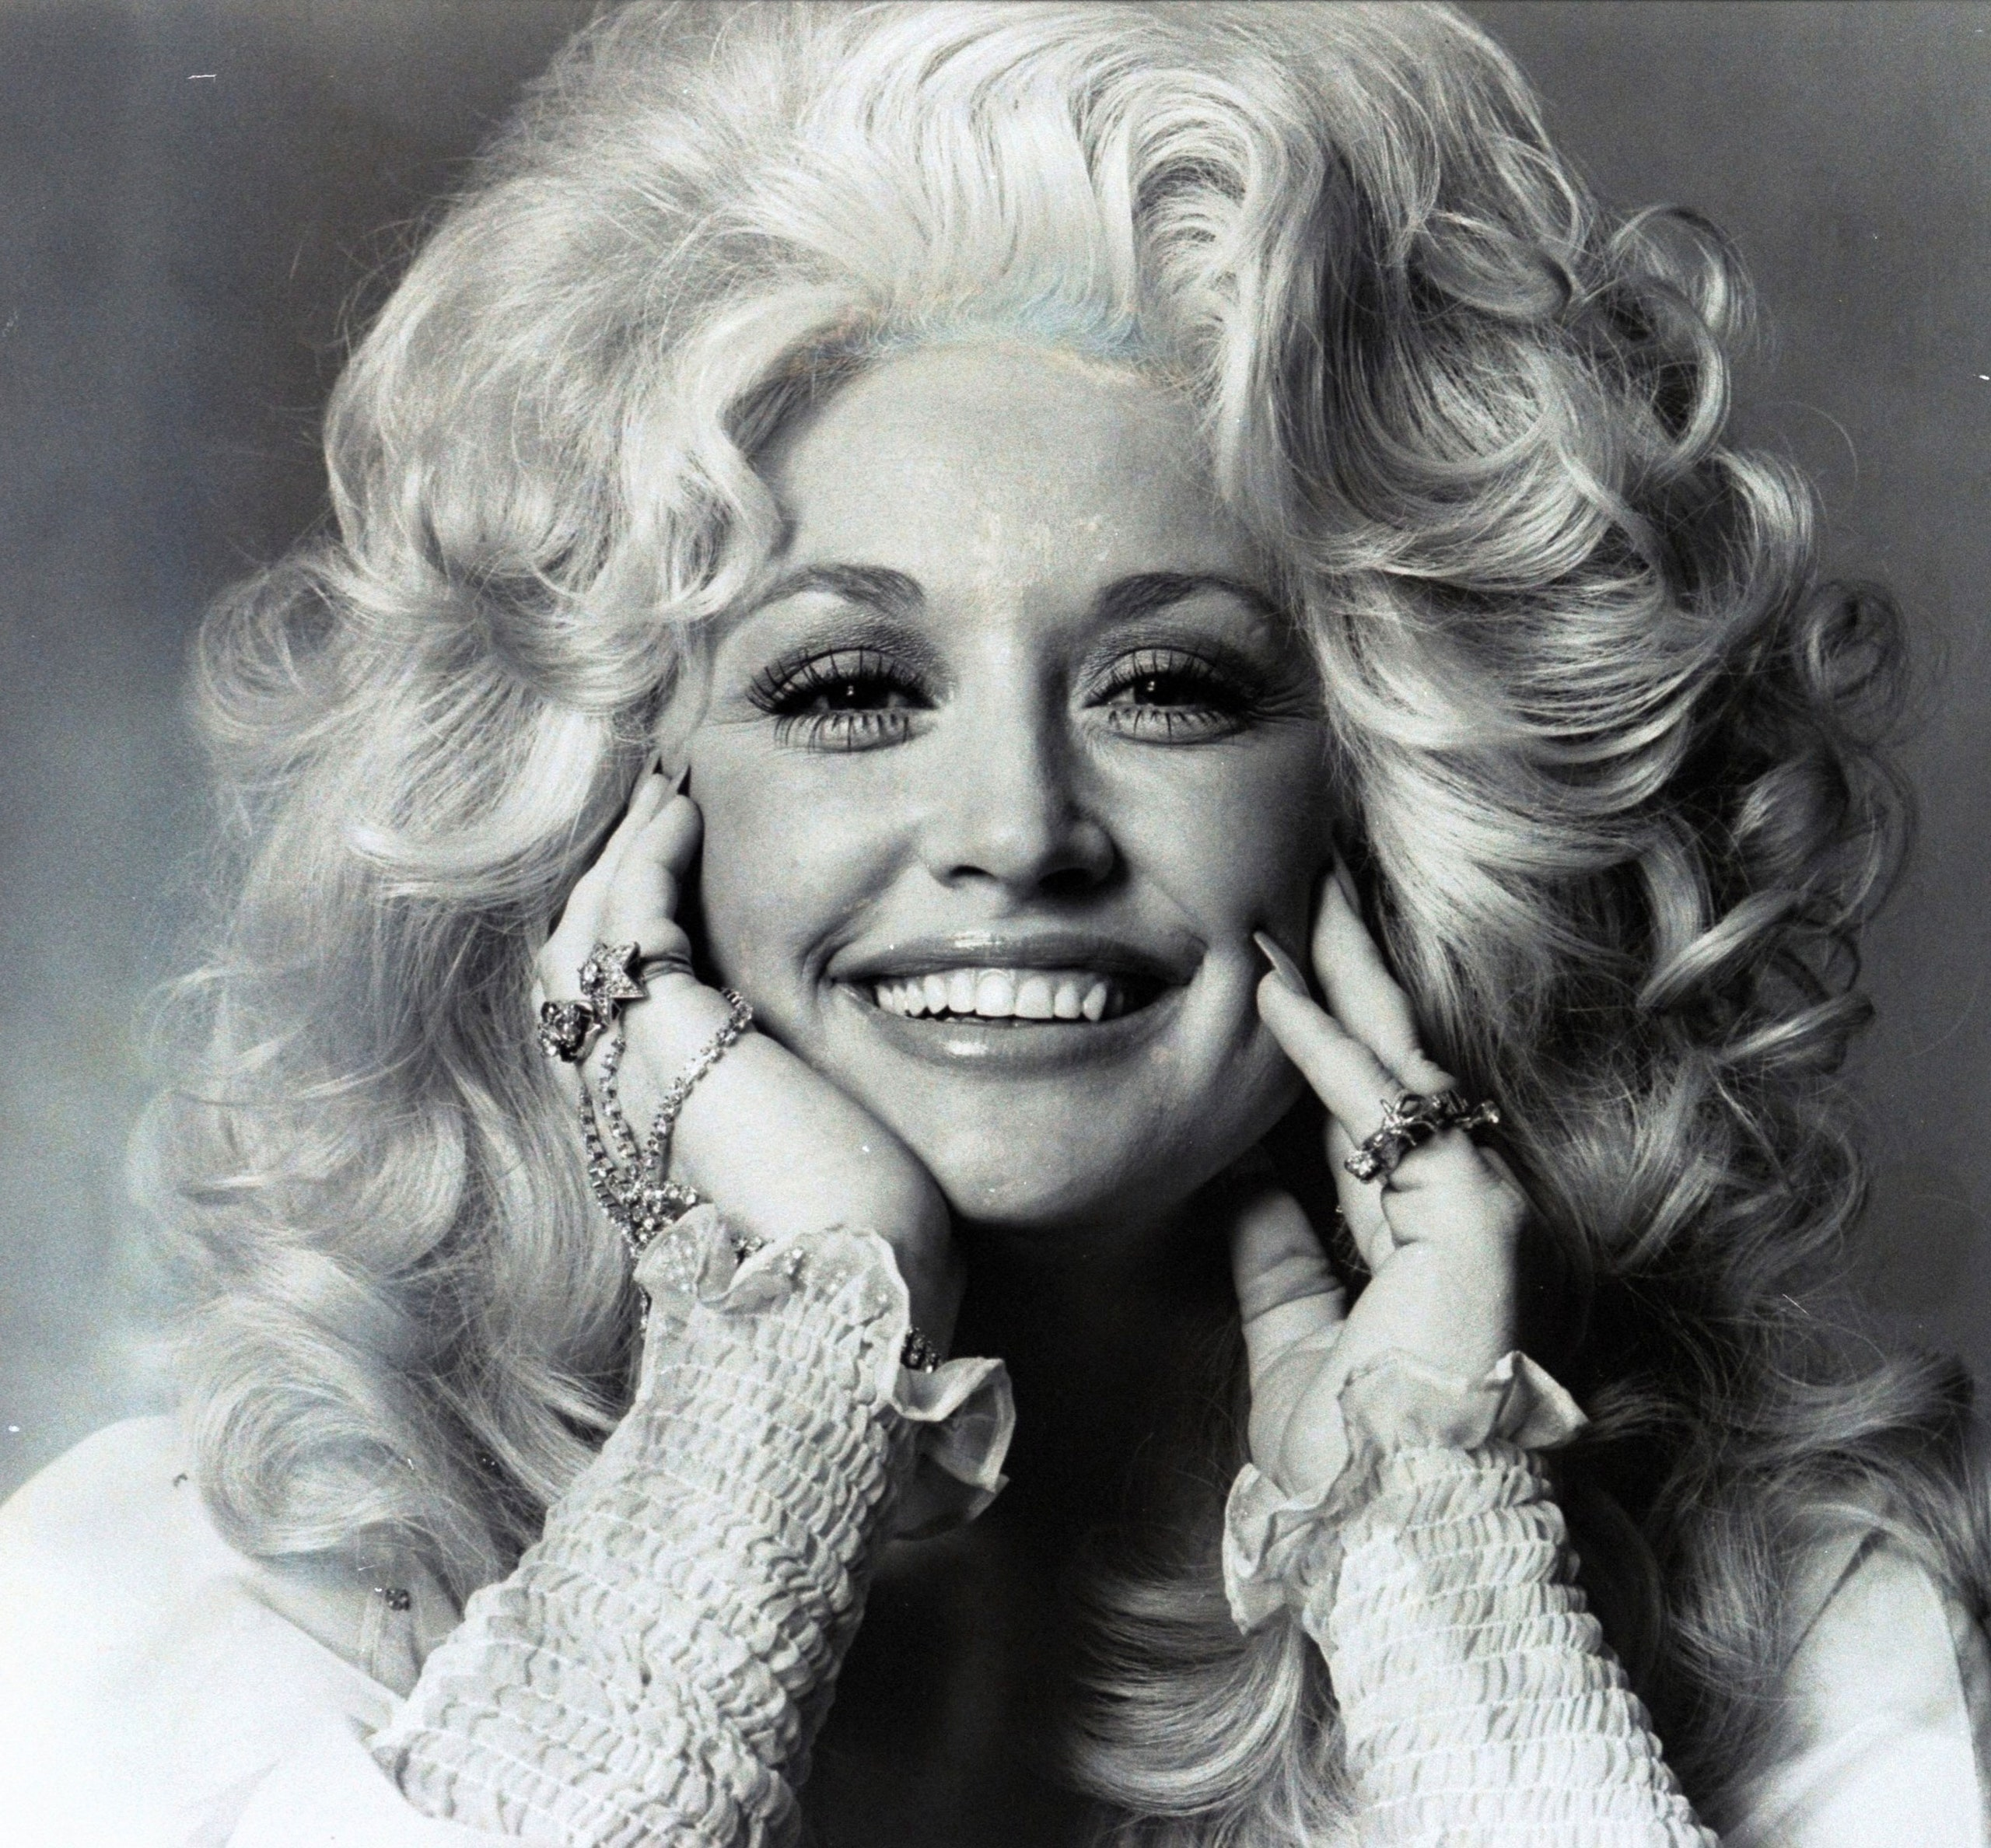 1 208 Sparkling Facts About Dolly Parton, The Rhinestone Queen of Tennessee